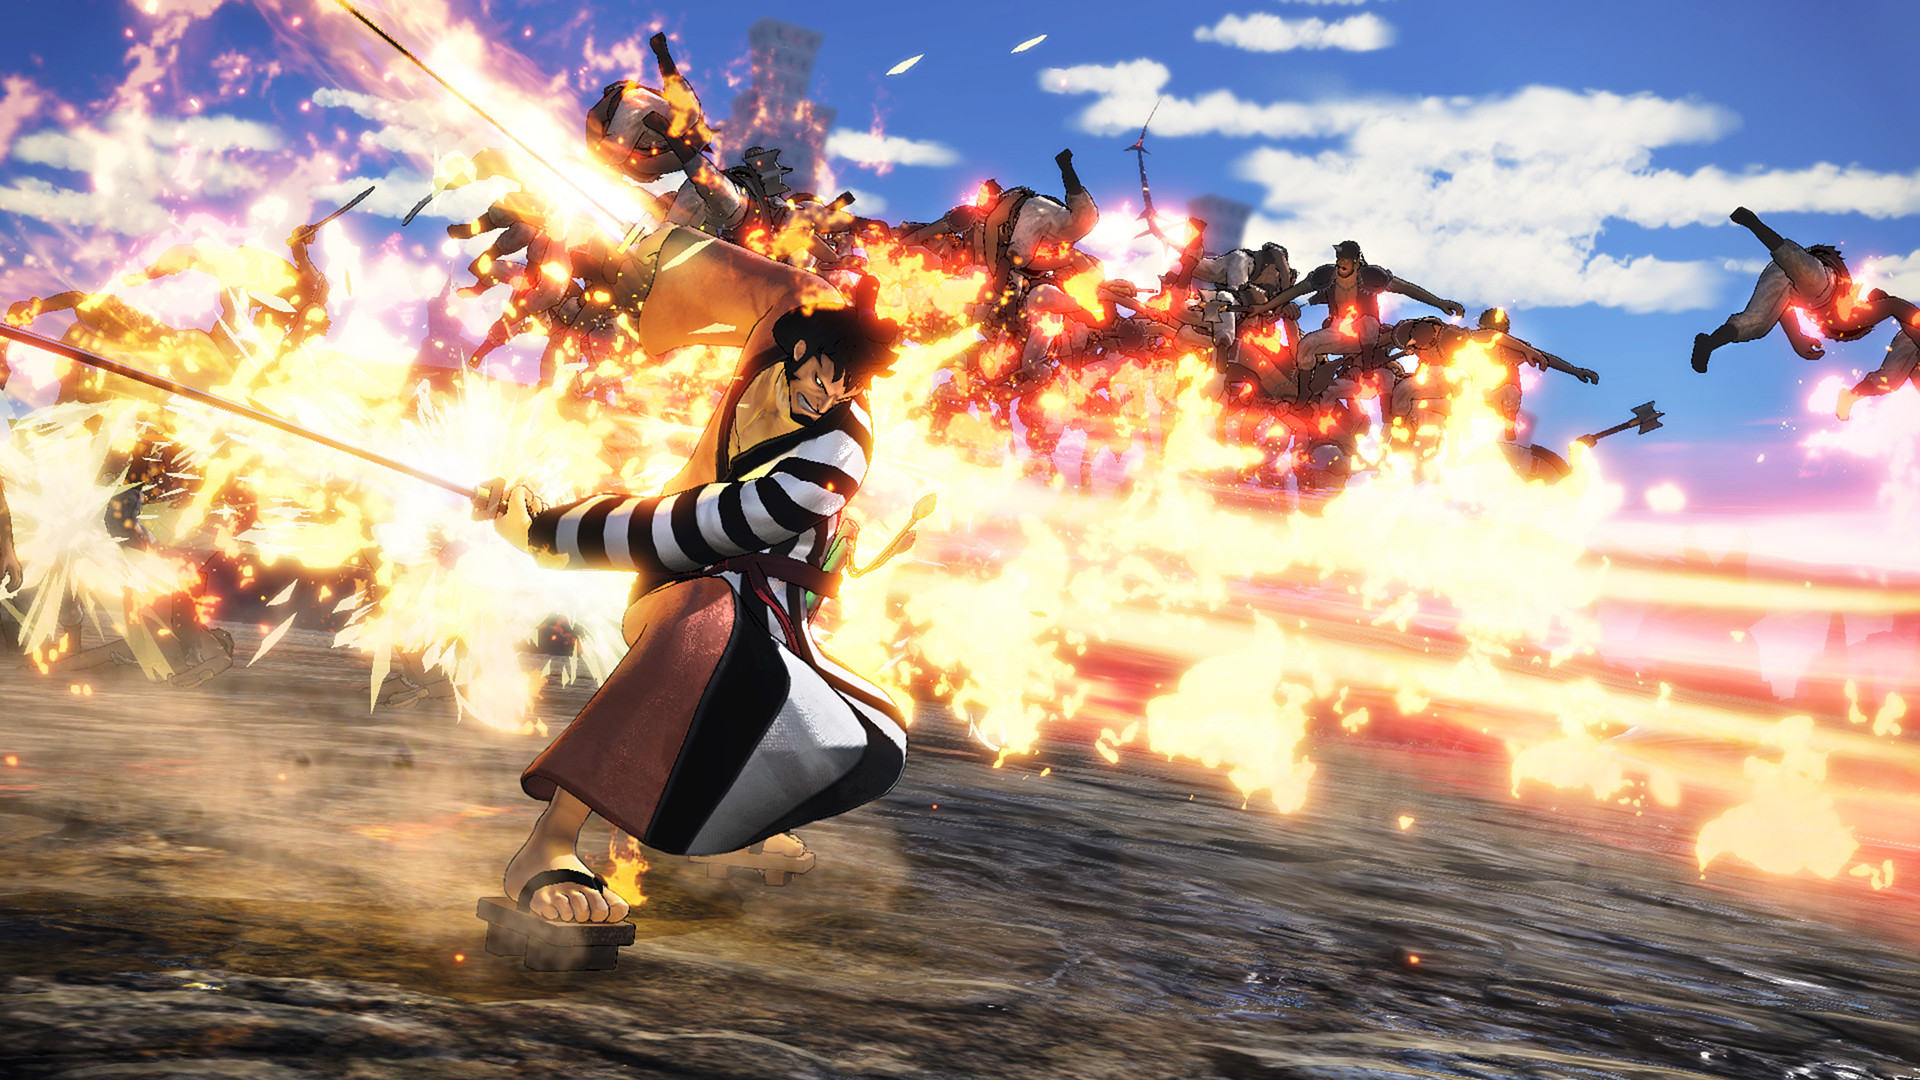 Download One Piece Pirate Warriors 4 Land Of Wano-P2P In ...